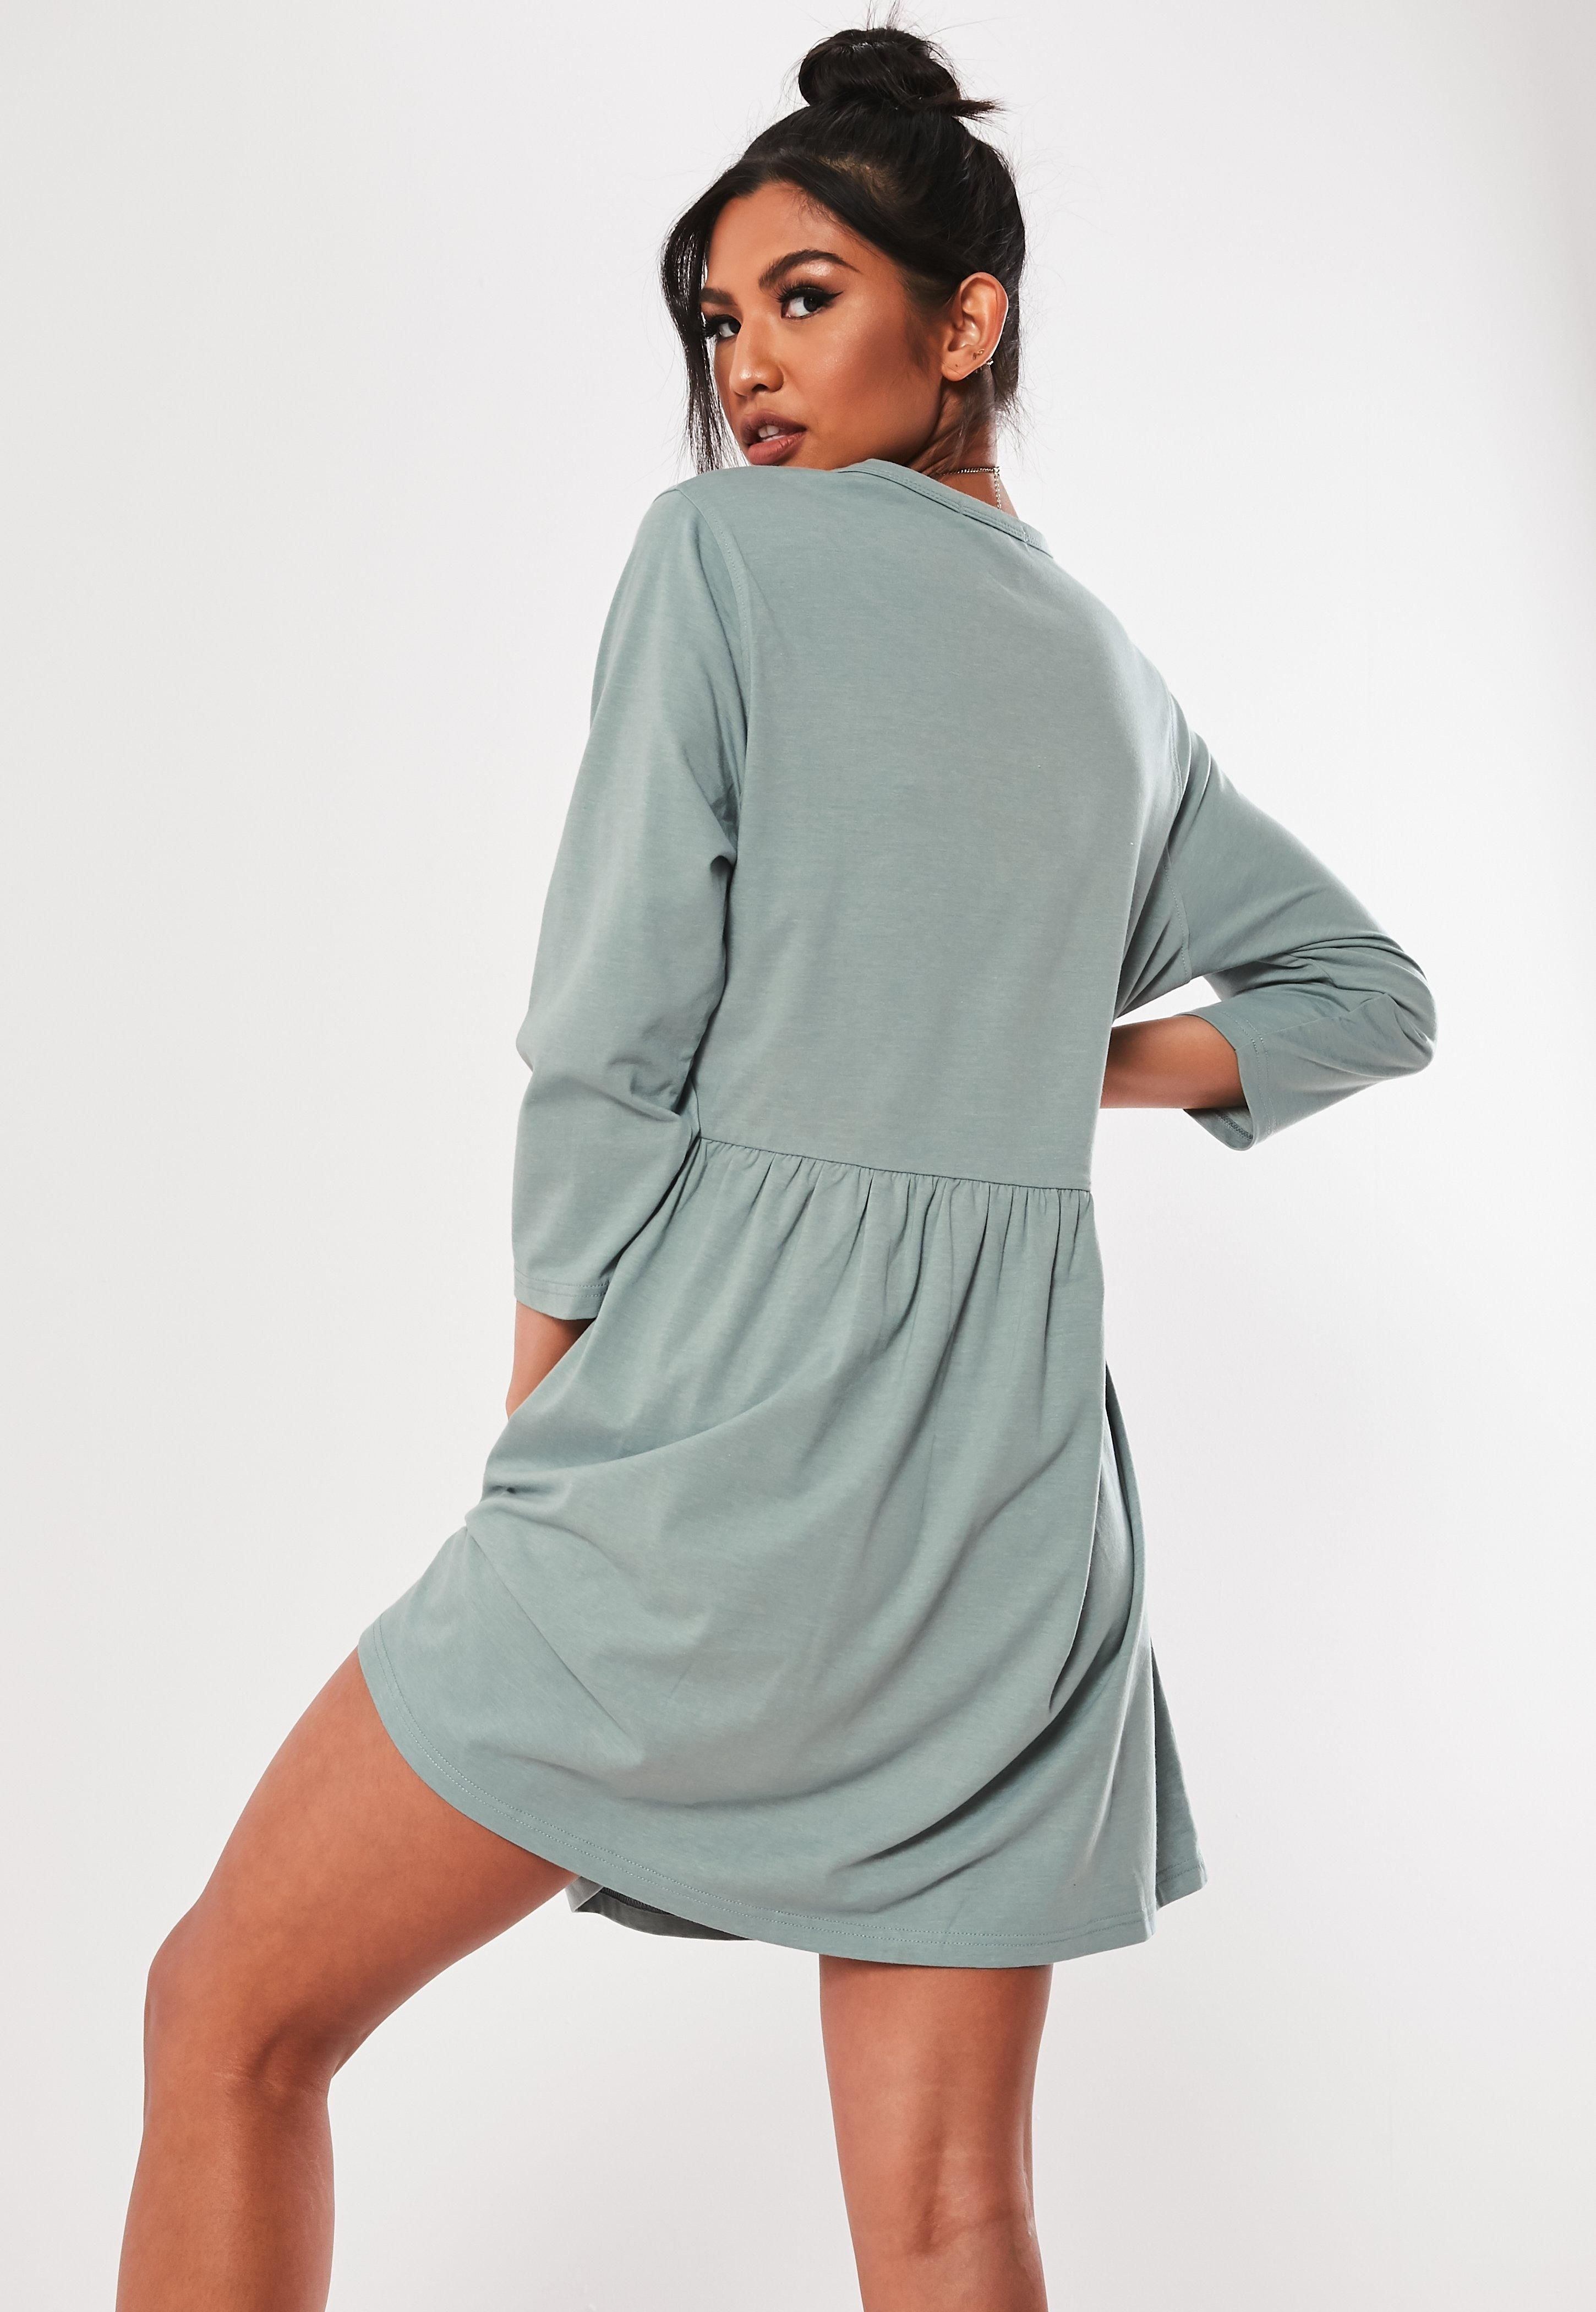 2ee96521147 Gray Jersey Half Sleeve Oversized Smock Dress #Sponsored #Sleeve, #ad, # Jersey, #Gray